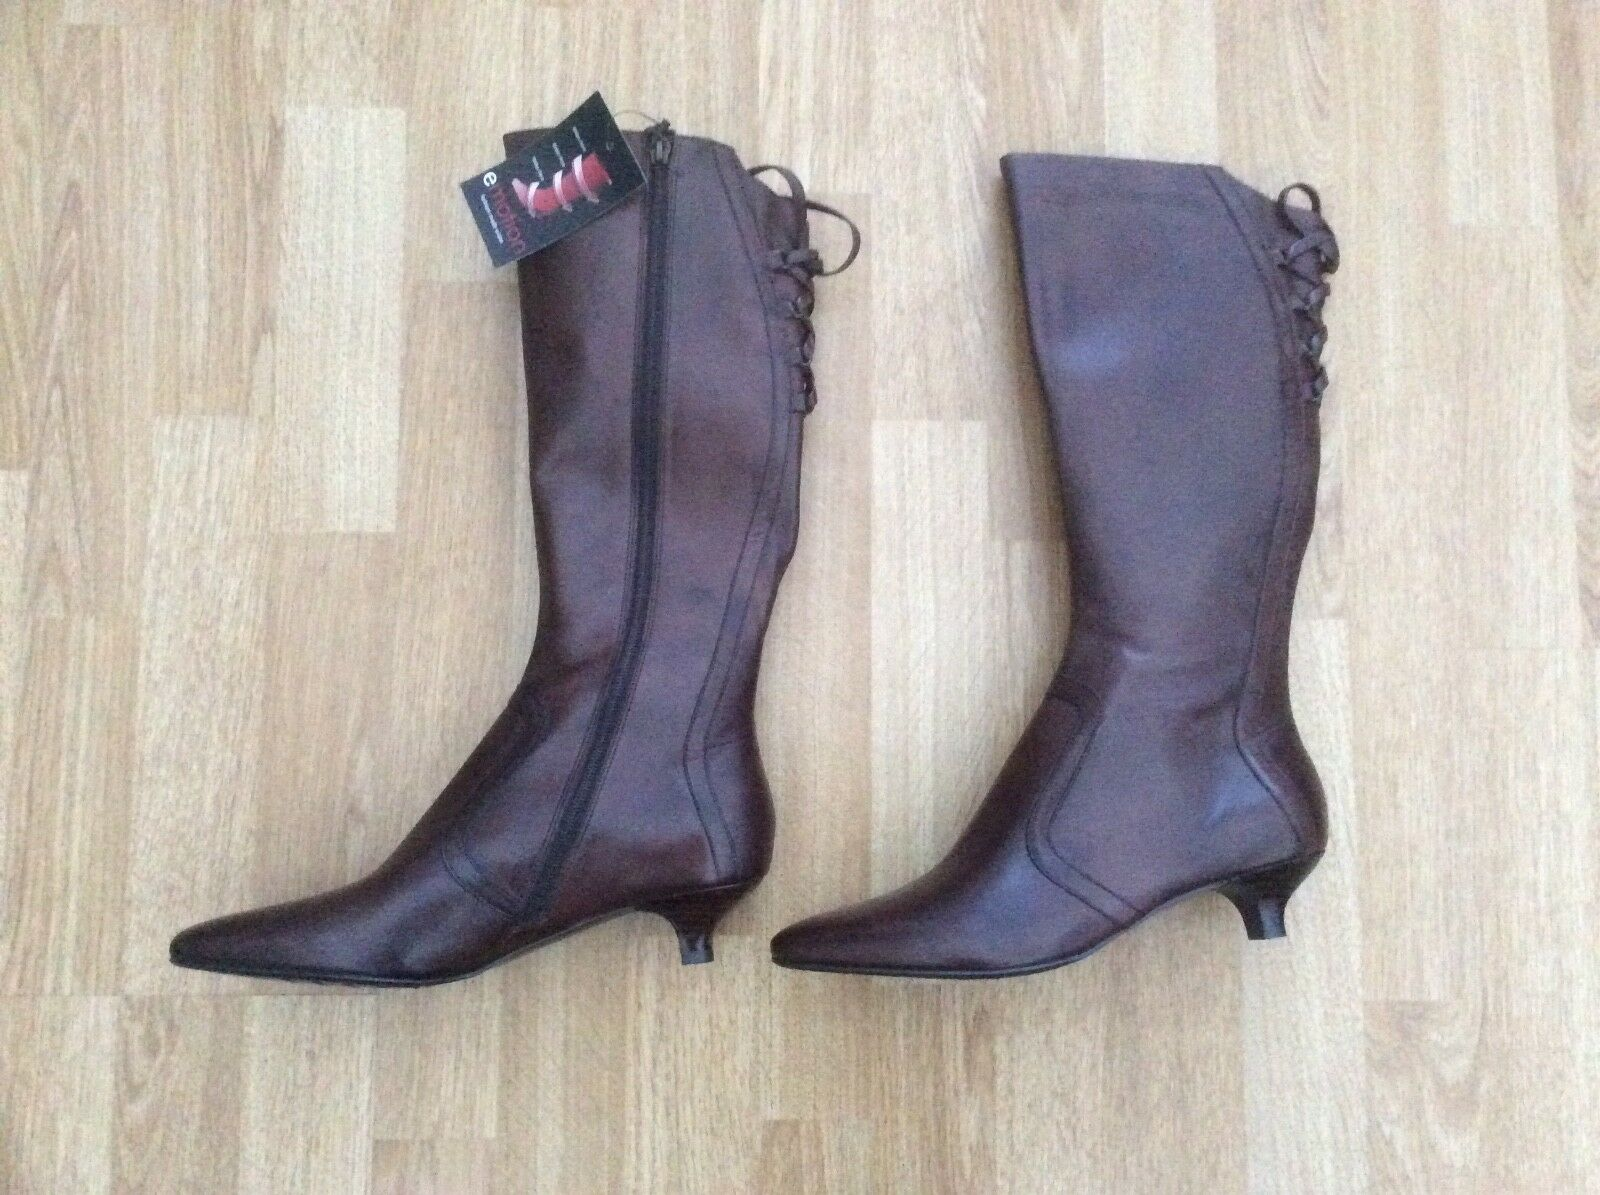 LADIES EMOTION KNEE HIGH LEATHER COMFY BOOTS STYLE NANCY BROWN SIZE